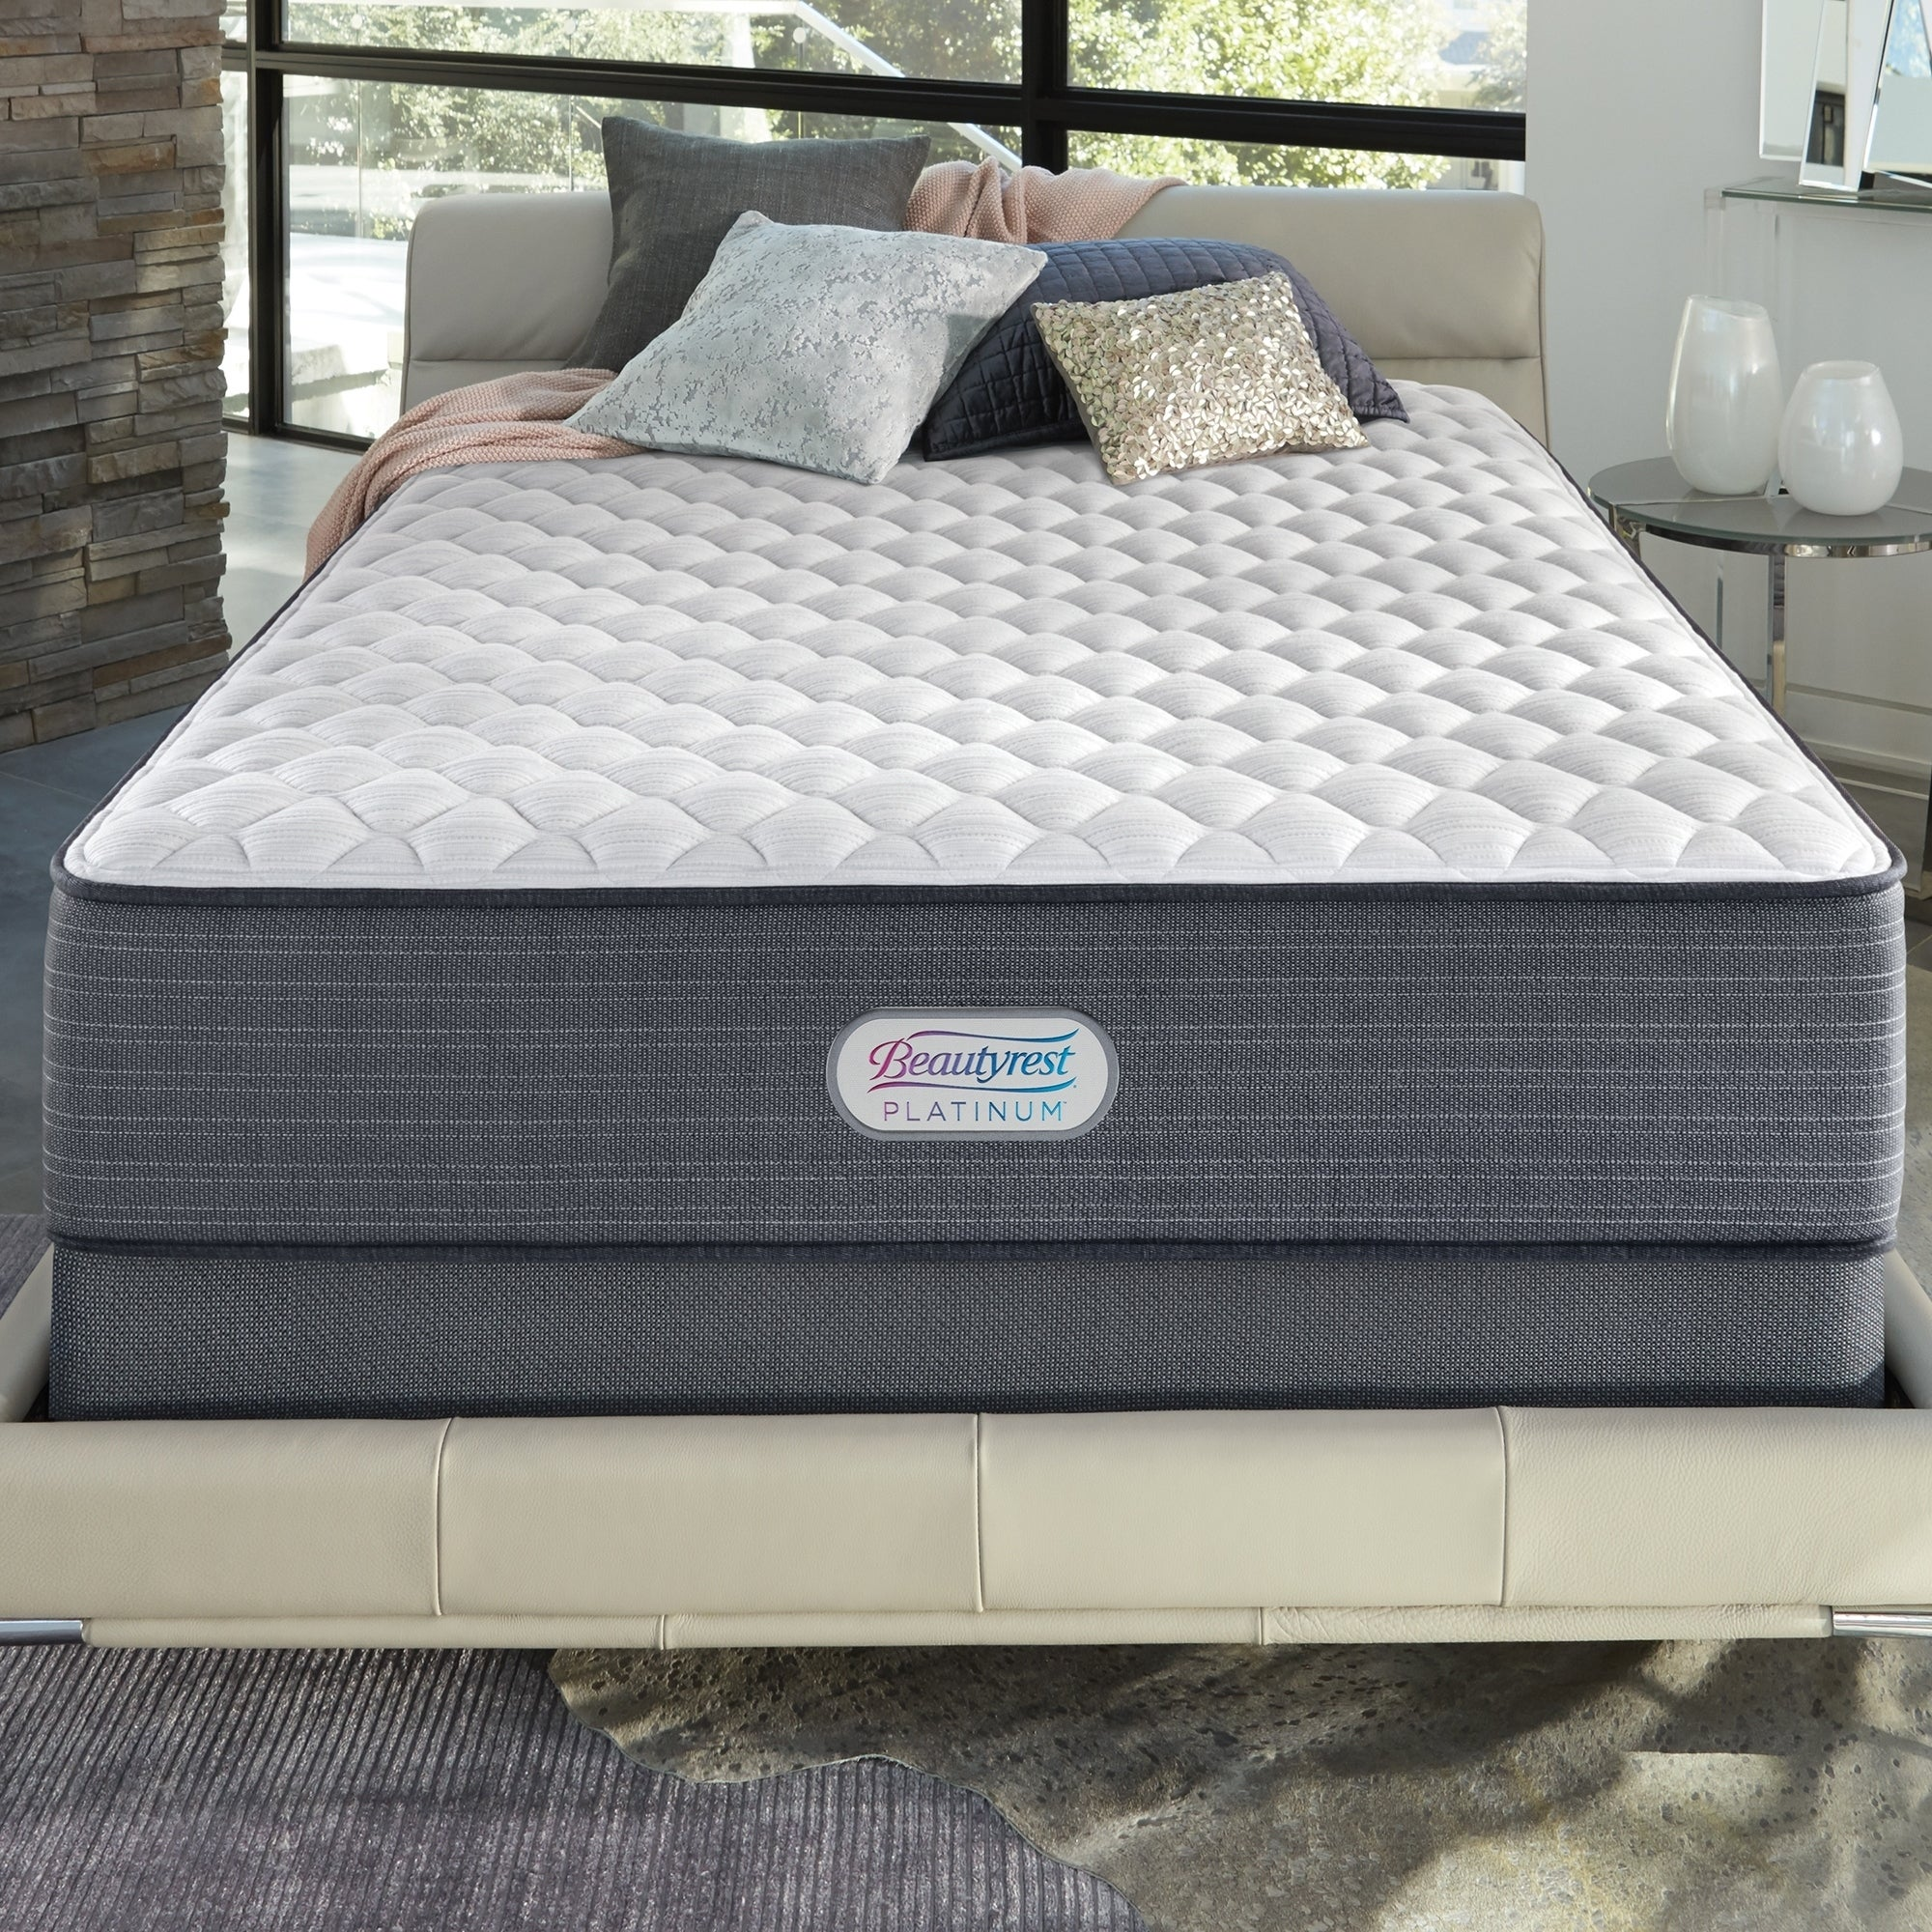 Shop Beautyrest Platinum Spring Grove 13 inch Extra Firm Full size